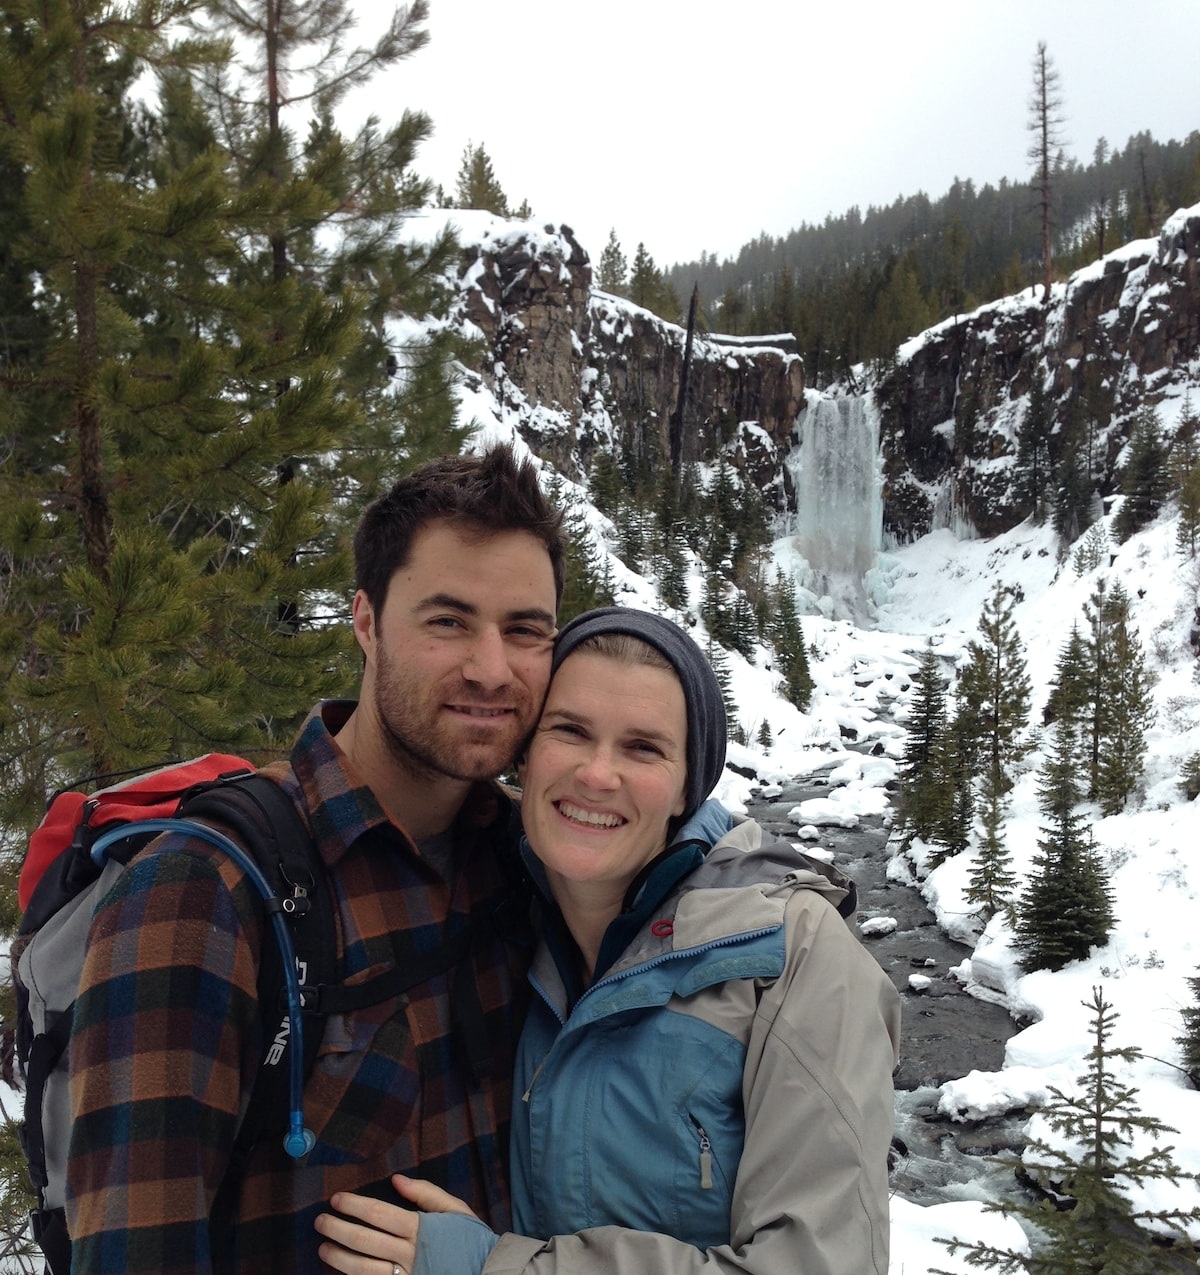 My wife Jessica and I settled in Bend after years